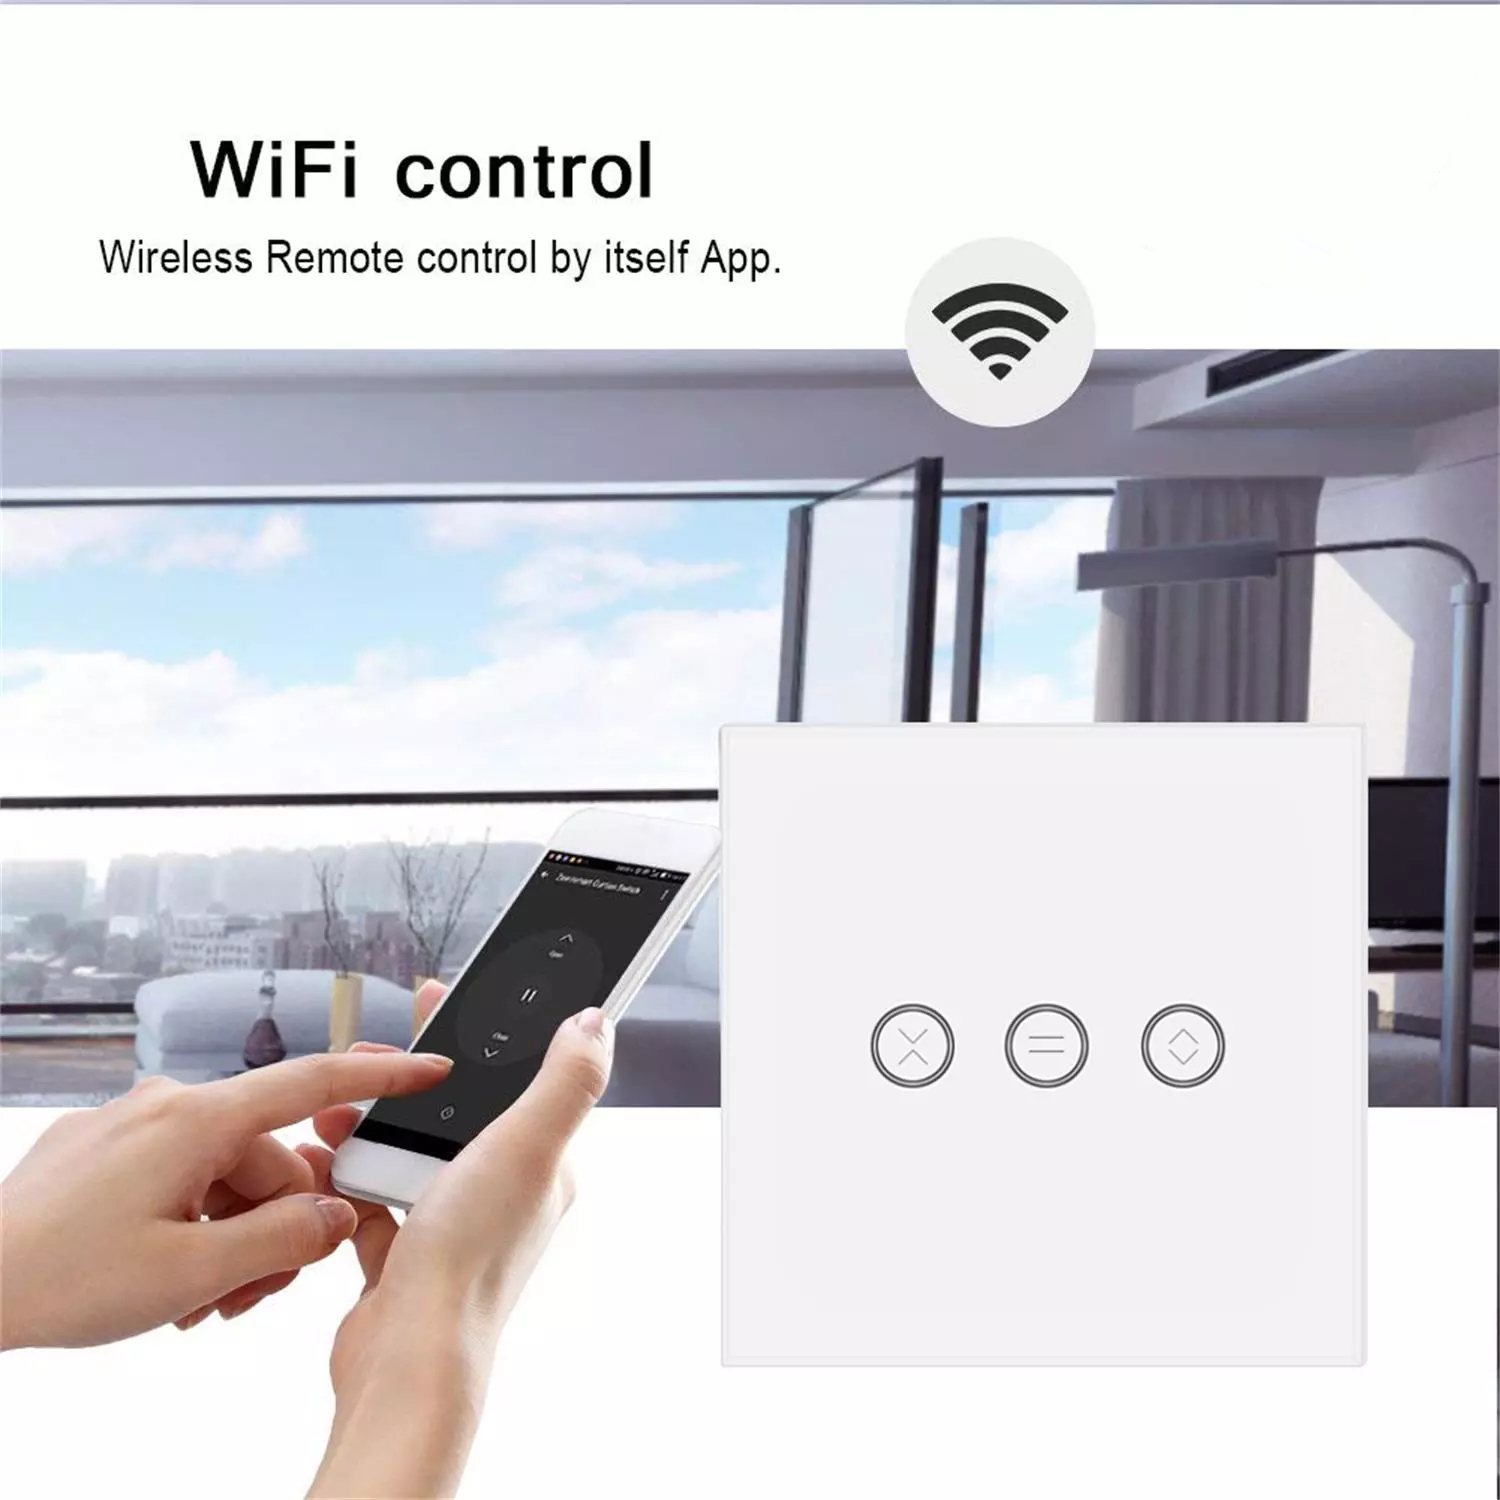 Tuya Xenon WiFi Remote Mobile Controlled Touch EU/UK/CN type curtain switch standard WiFi curtain Switch in tempered glass